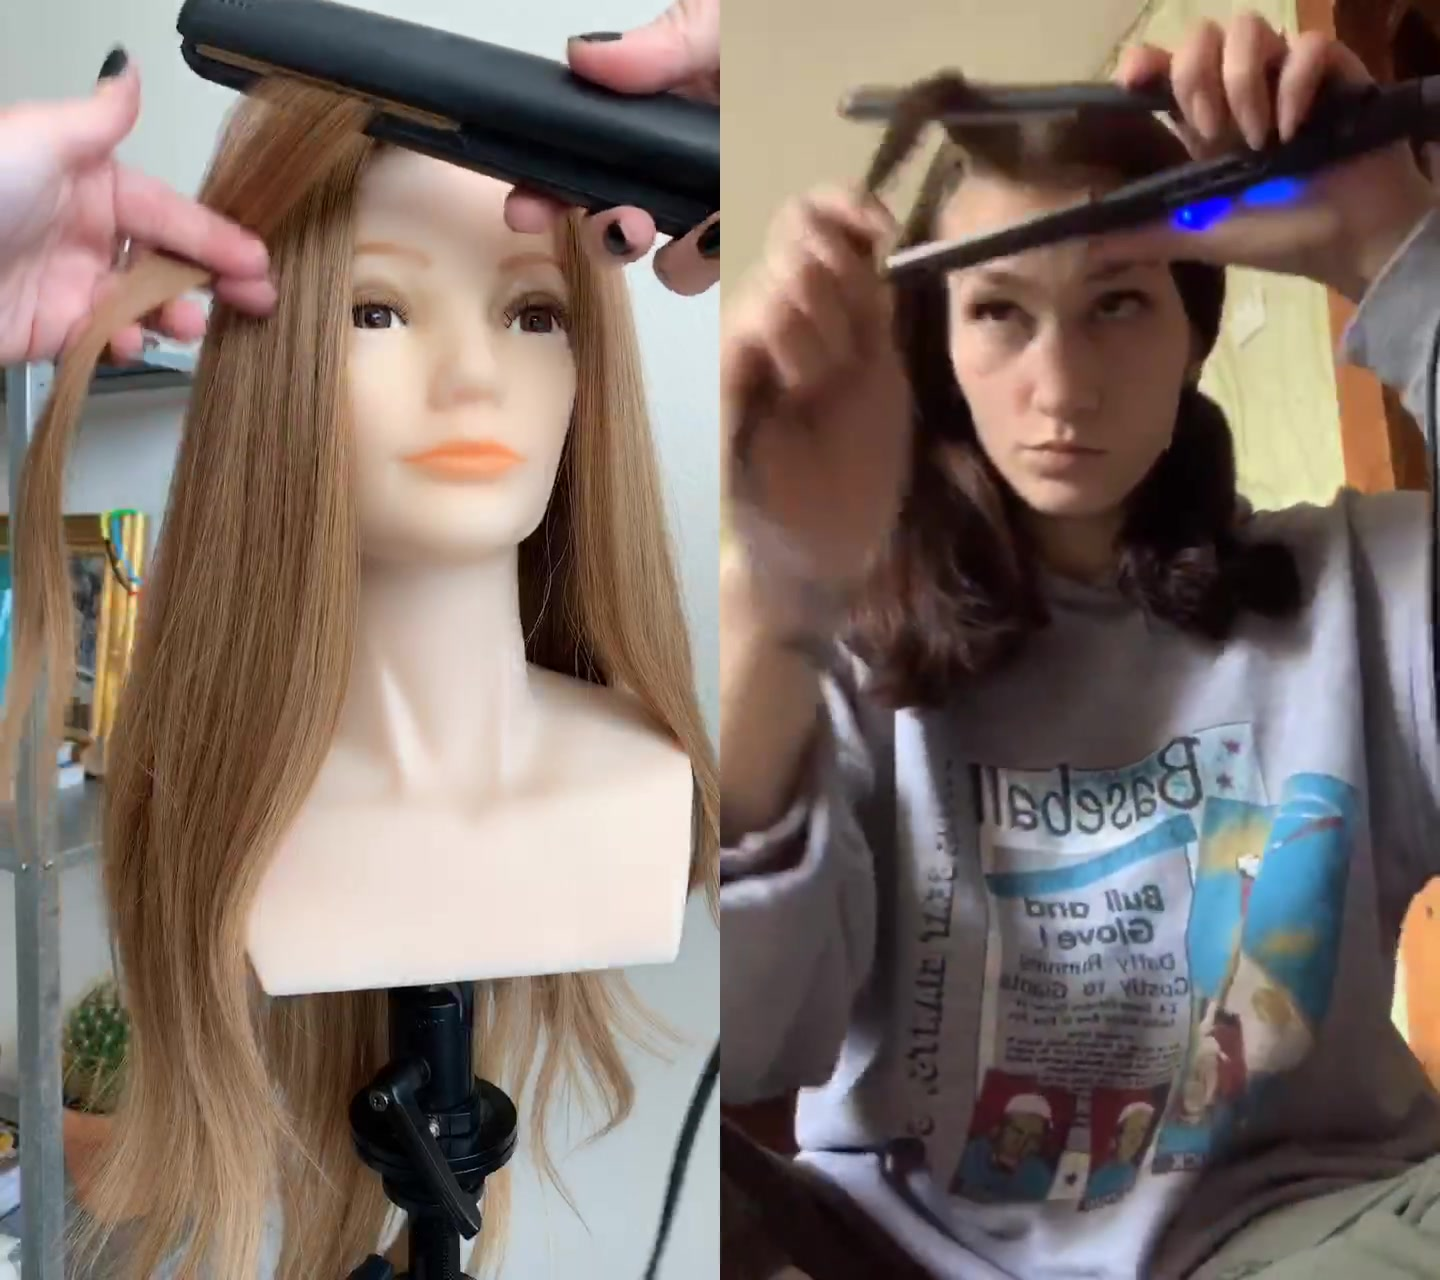 Turn the iron instead of wrapping the hair around the iron.  You'll curl closer to the scalp that way. 🤗#fyp #duet with @ksanya95 of tiktok banana